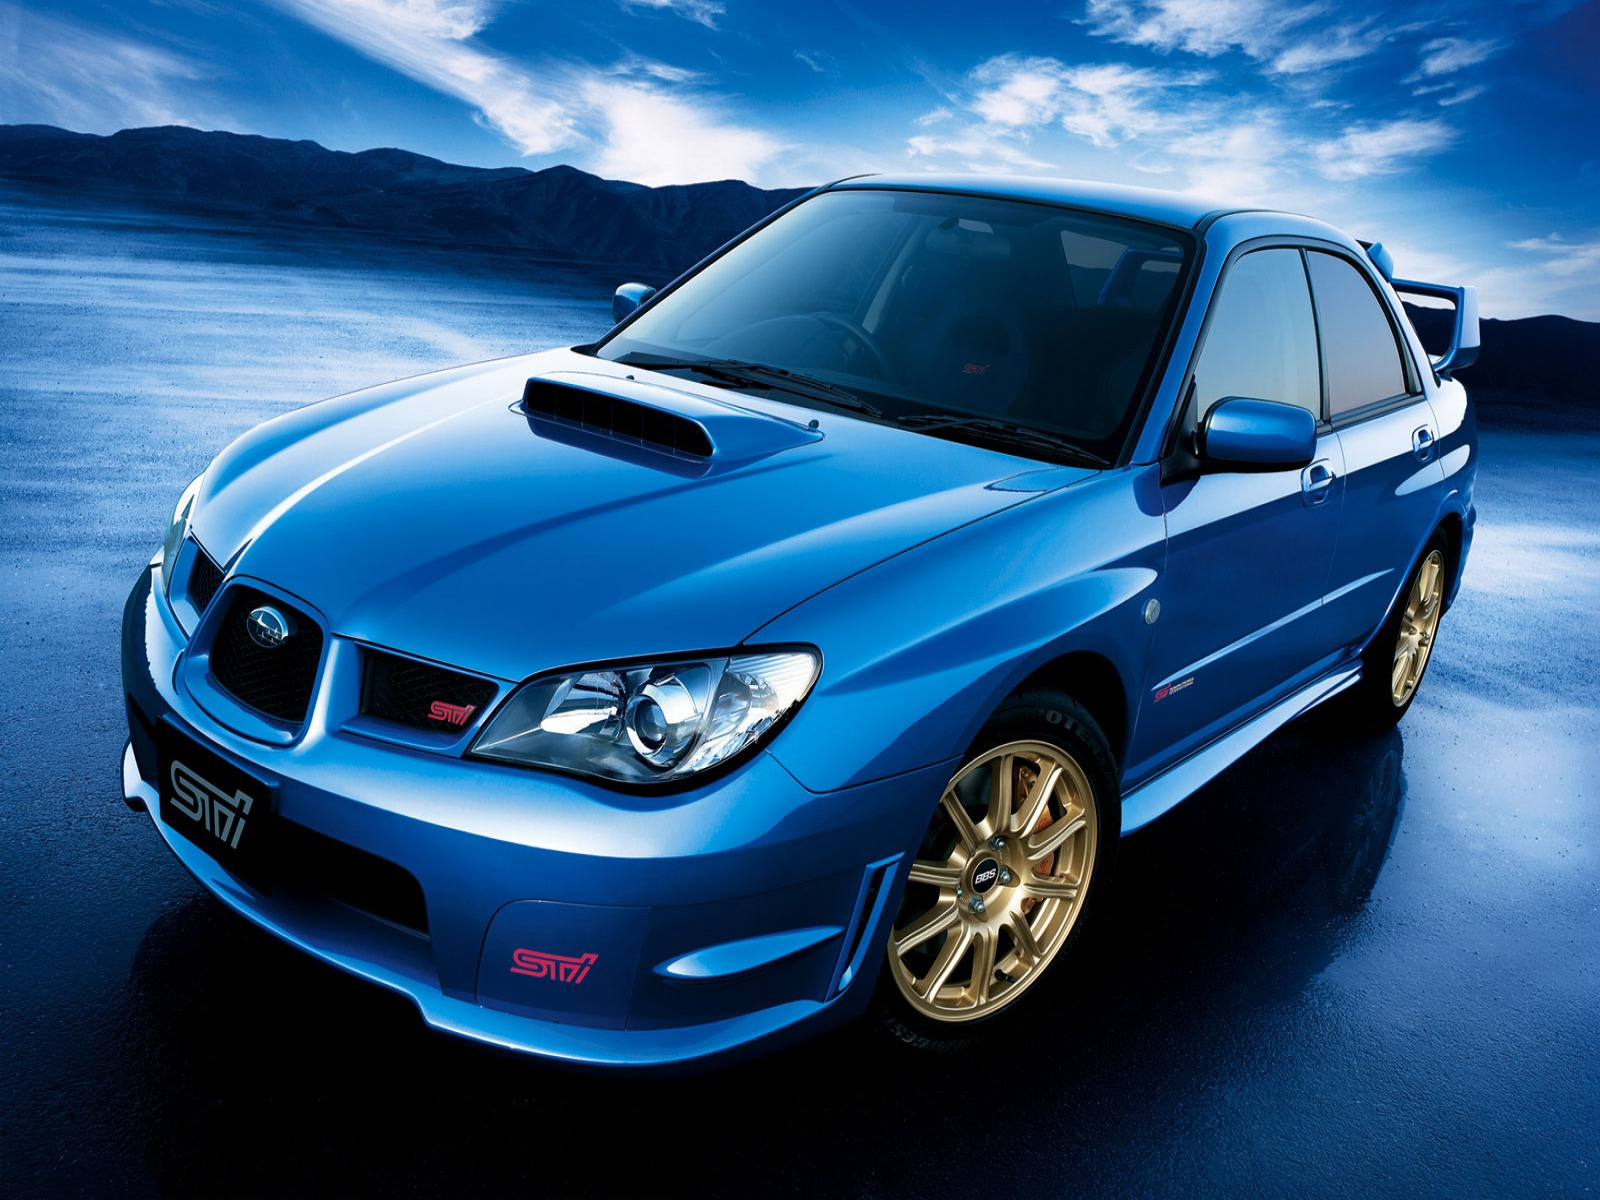 Subaru Impreza Wrx Sti Wallpaper Subaru Cars Wallpapers In Jpg